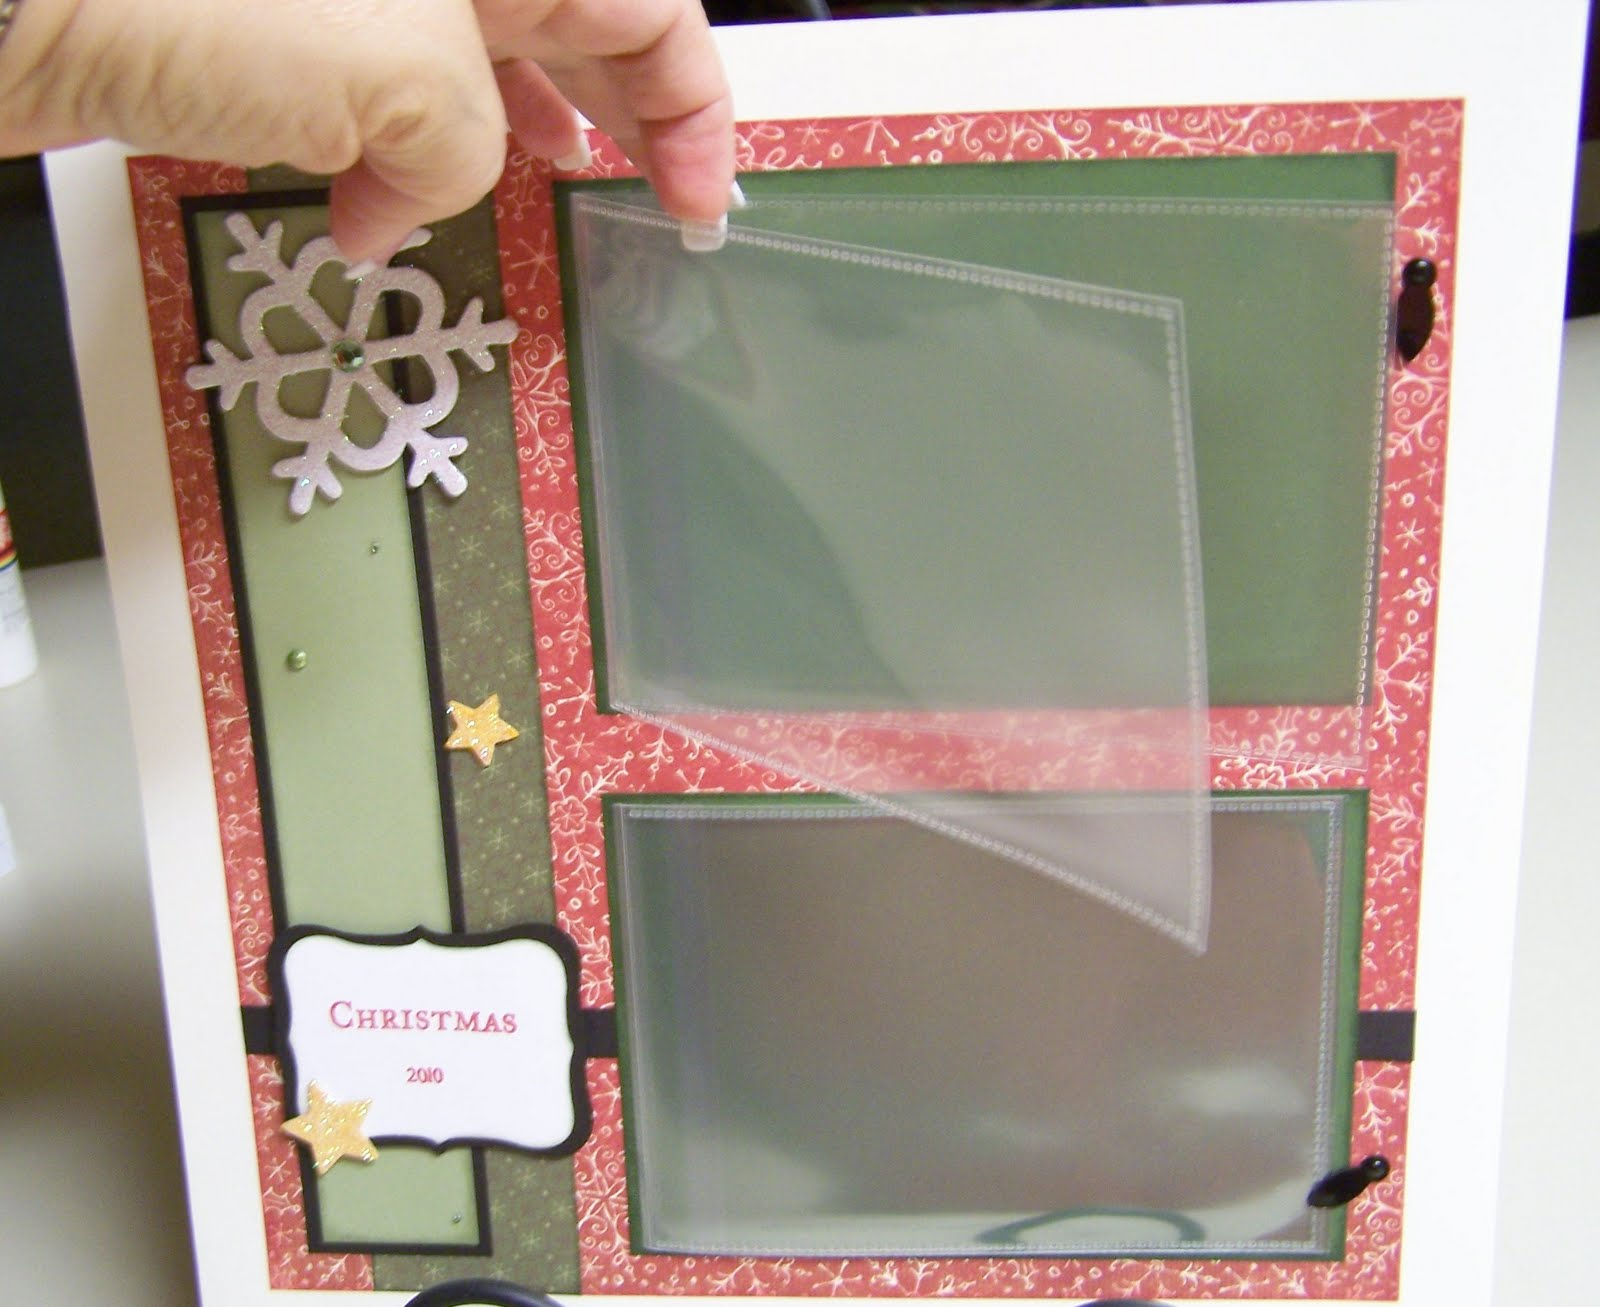 How to scrapbook recipes ideas - Recipe Scrapbook Layout Ideas Pictures